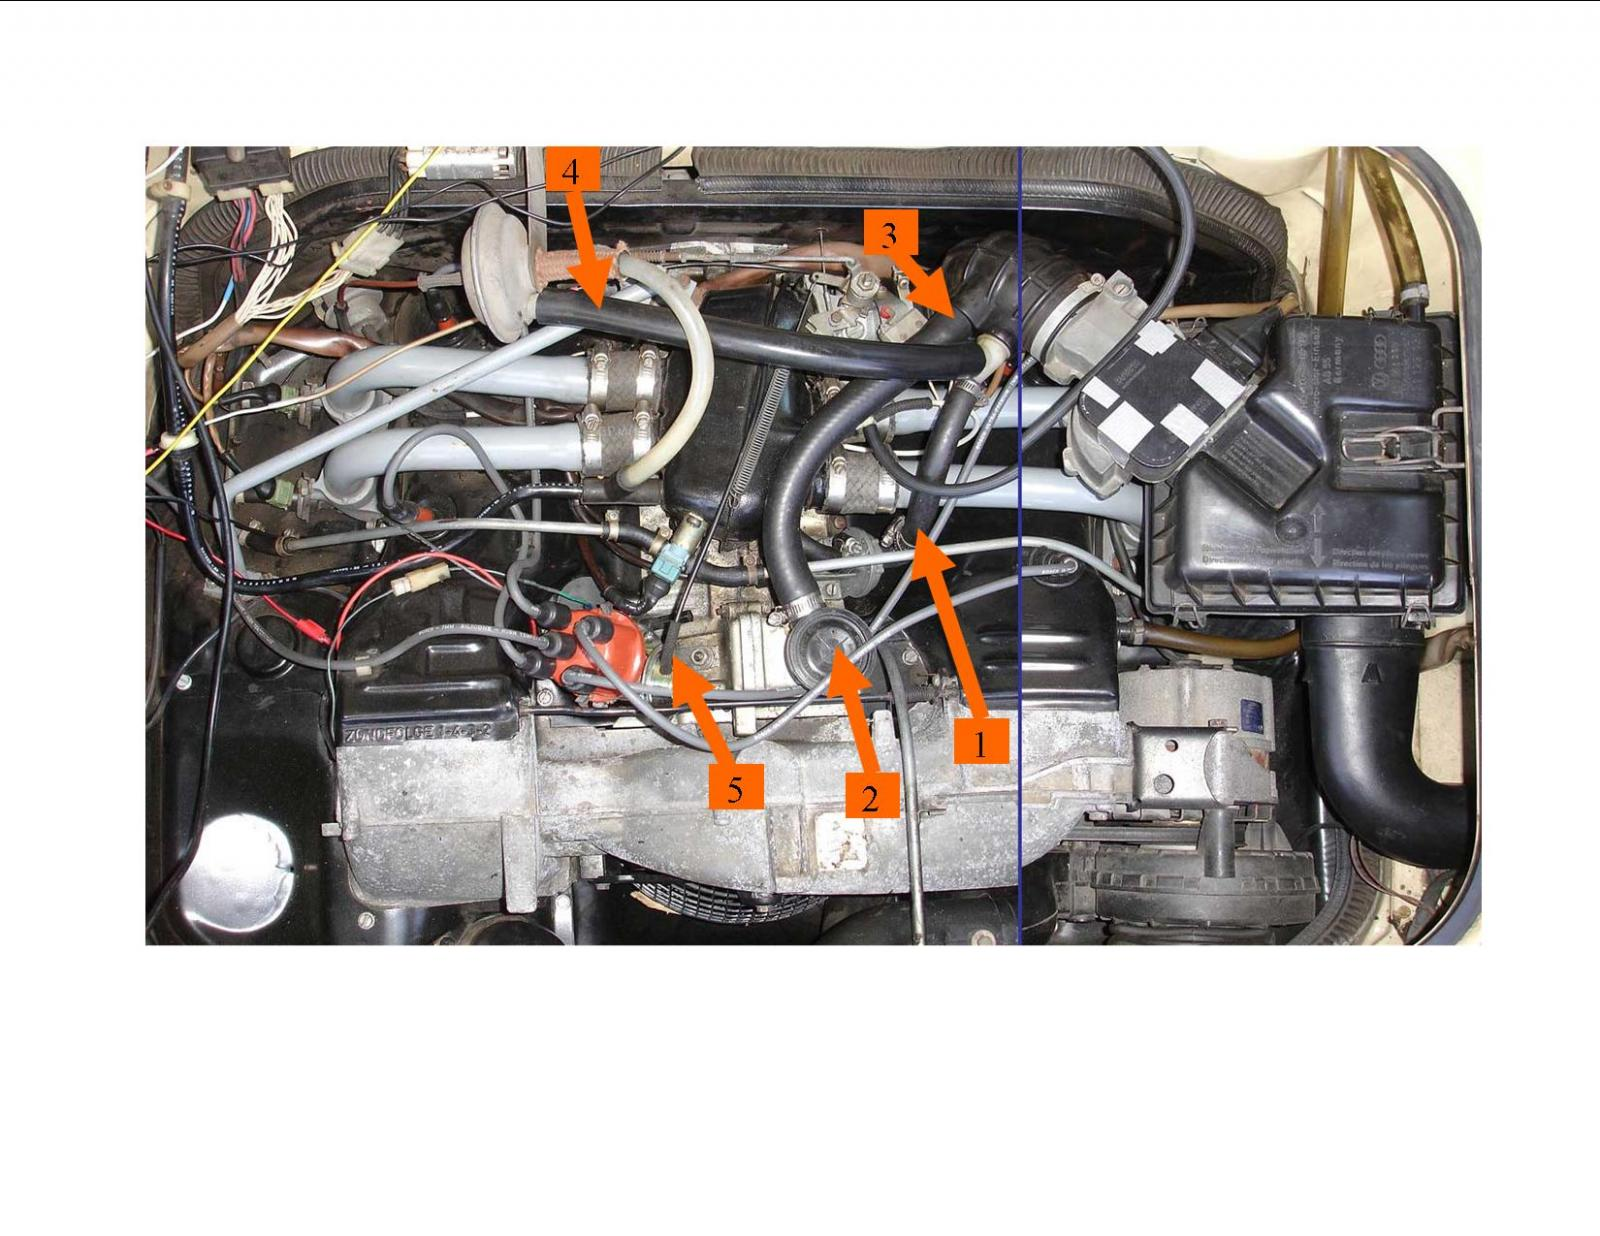 hight resolution of vanagon air cooled engine diagram wiring diagram forward air cooled vw engine exploded diagram